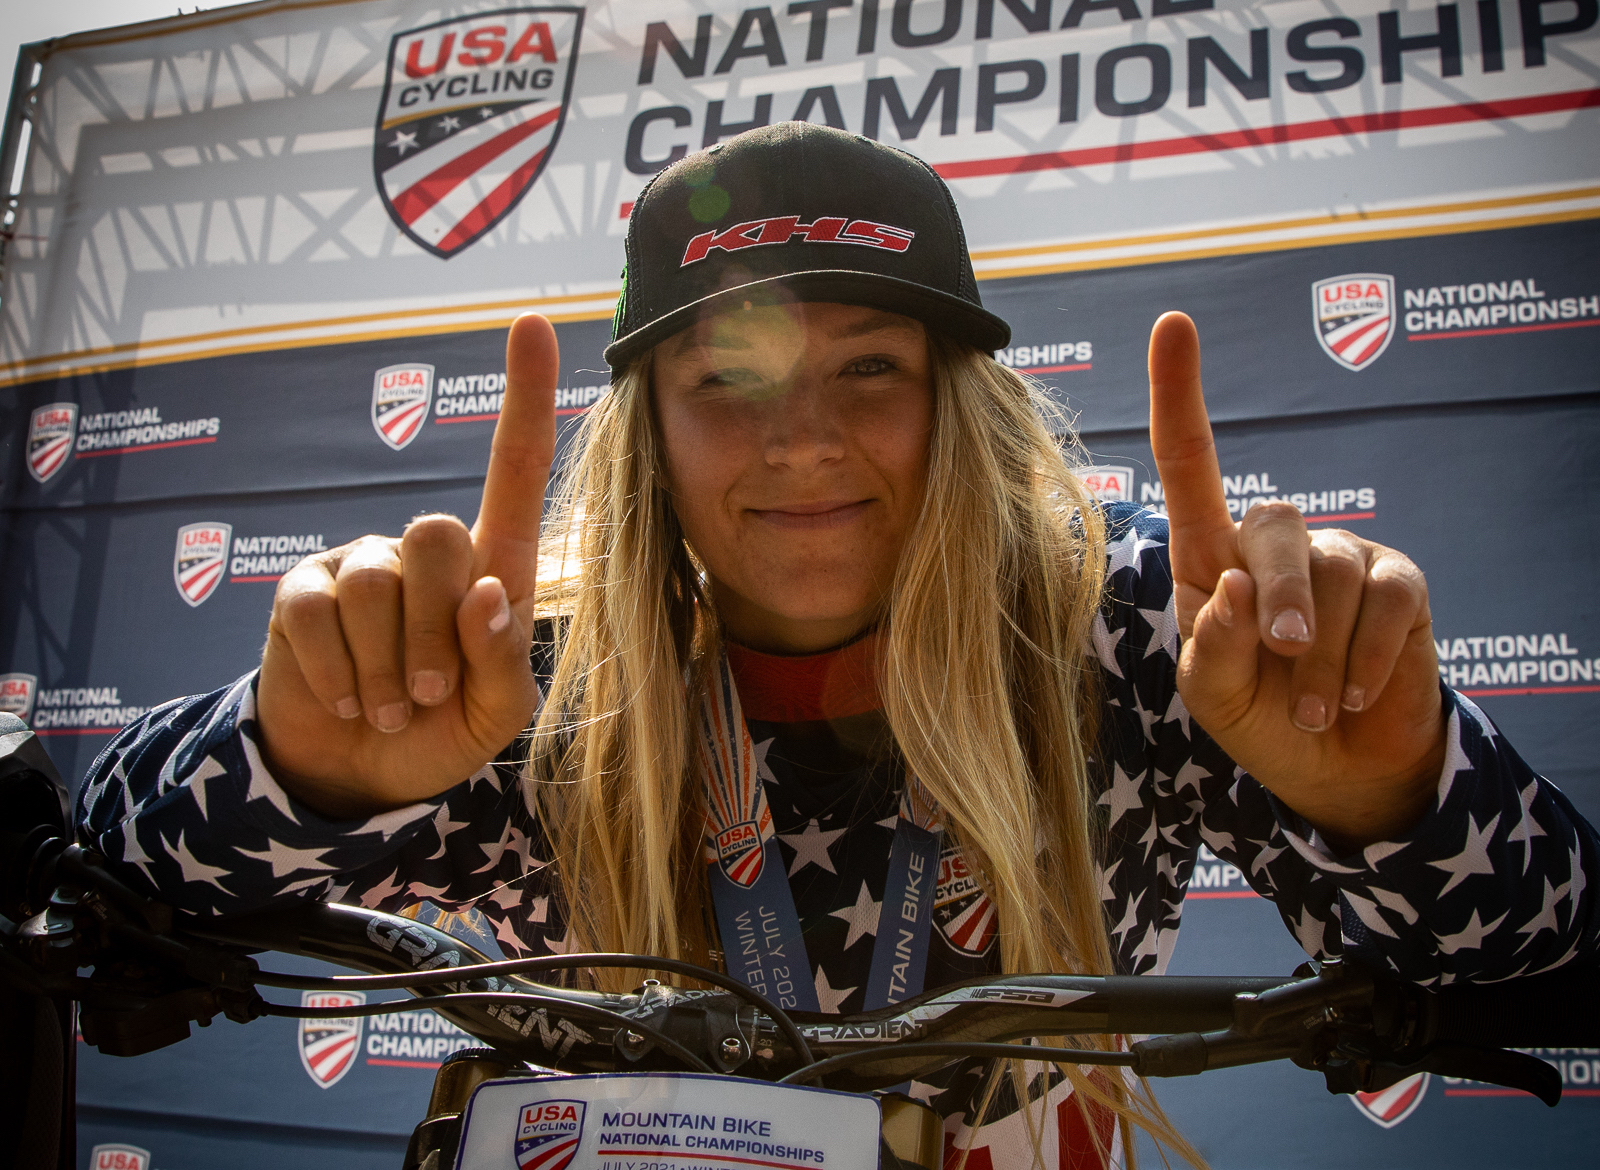 KHS Pro MT rider Kailey Skelton, the 2021 US Women's National Downhill Champion.